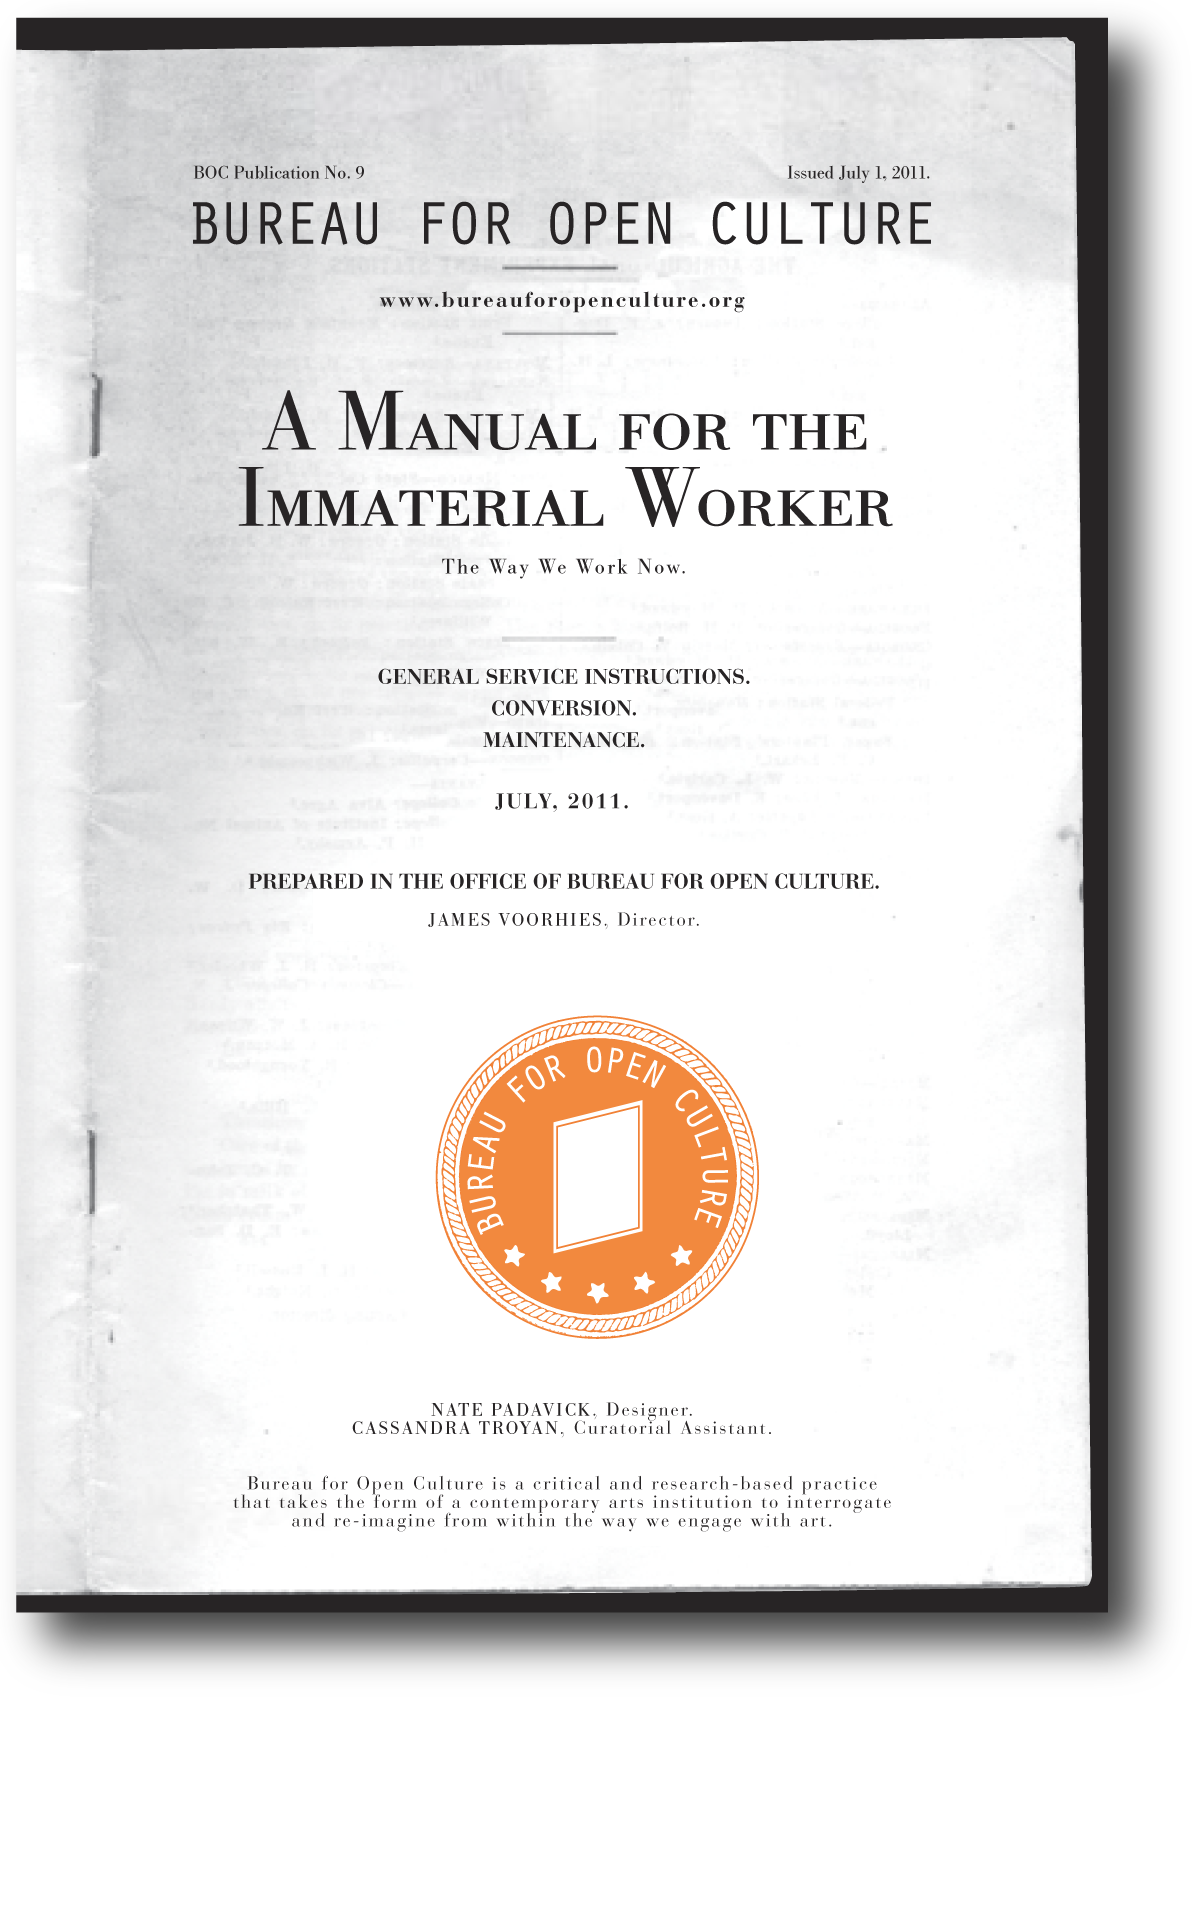 A Manual for the Immaterial Worker , published by Printed Matter, 2011; designed by Nate Padavick;12 pages;8.5 x 5.75 inches